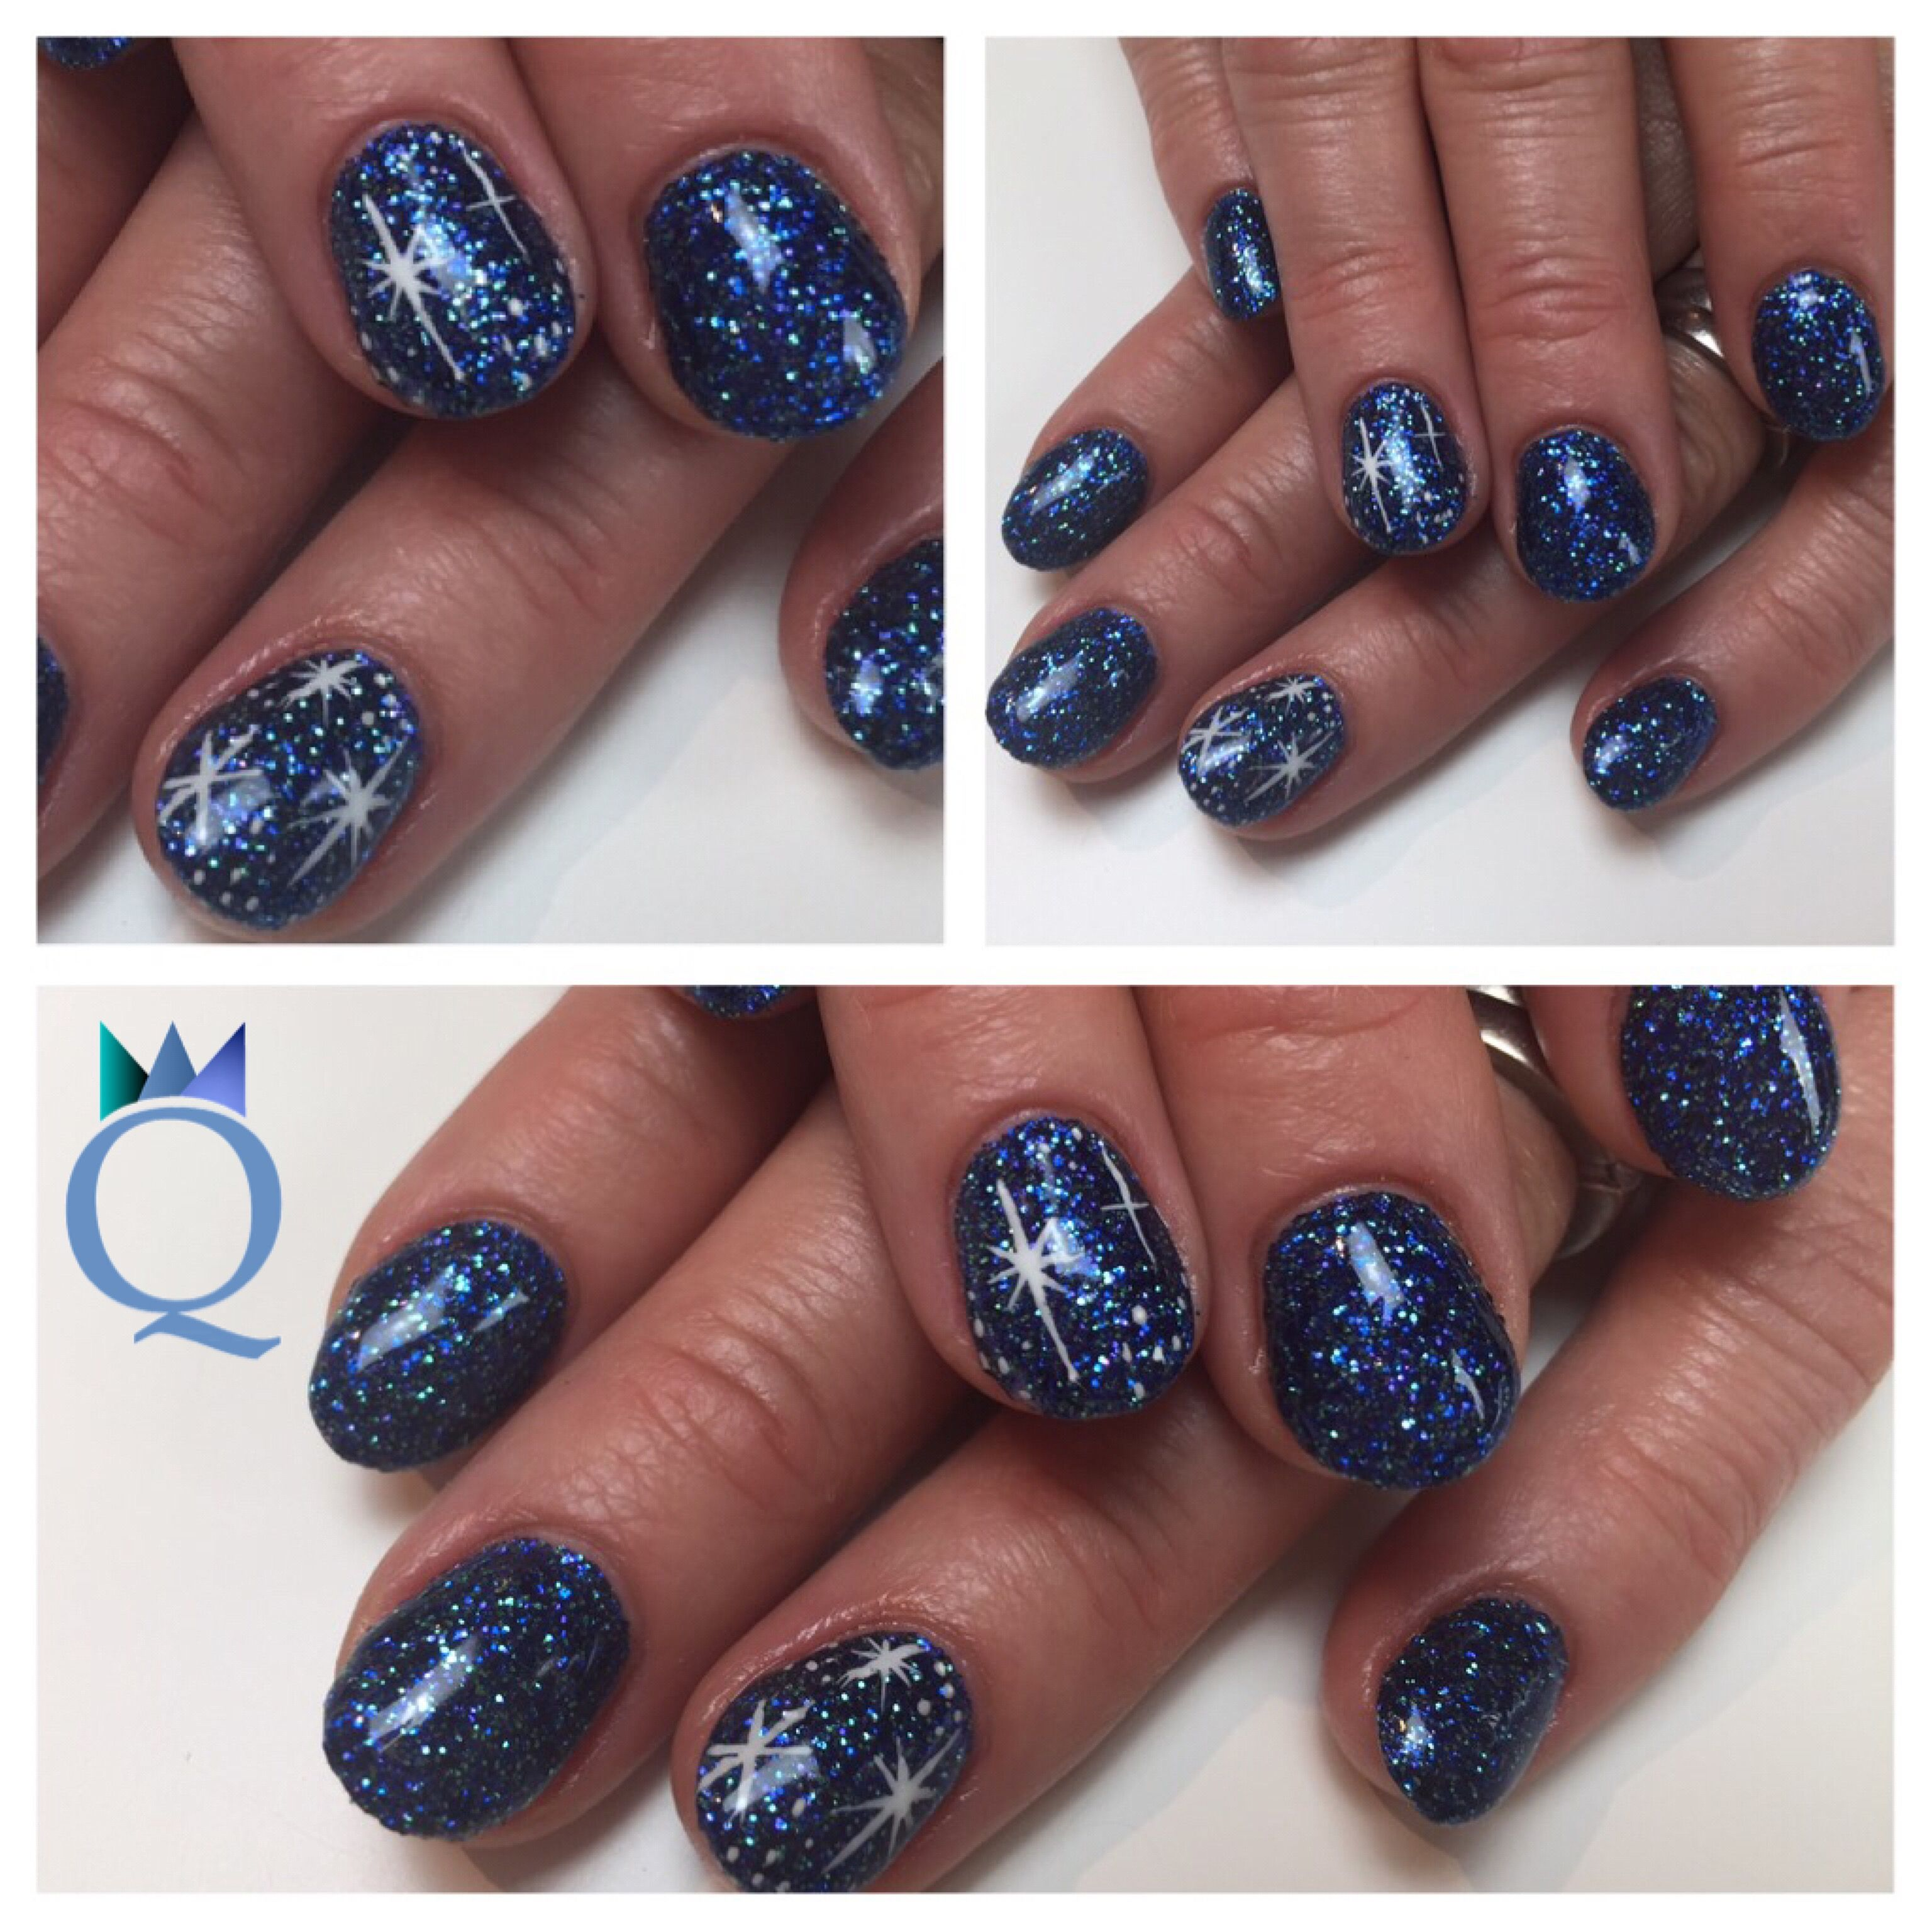 shortnails #acrylicnails #nails #blue #glitter #handpainted #stars ...